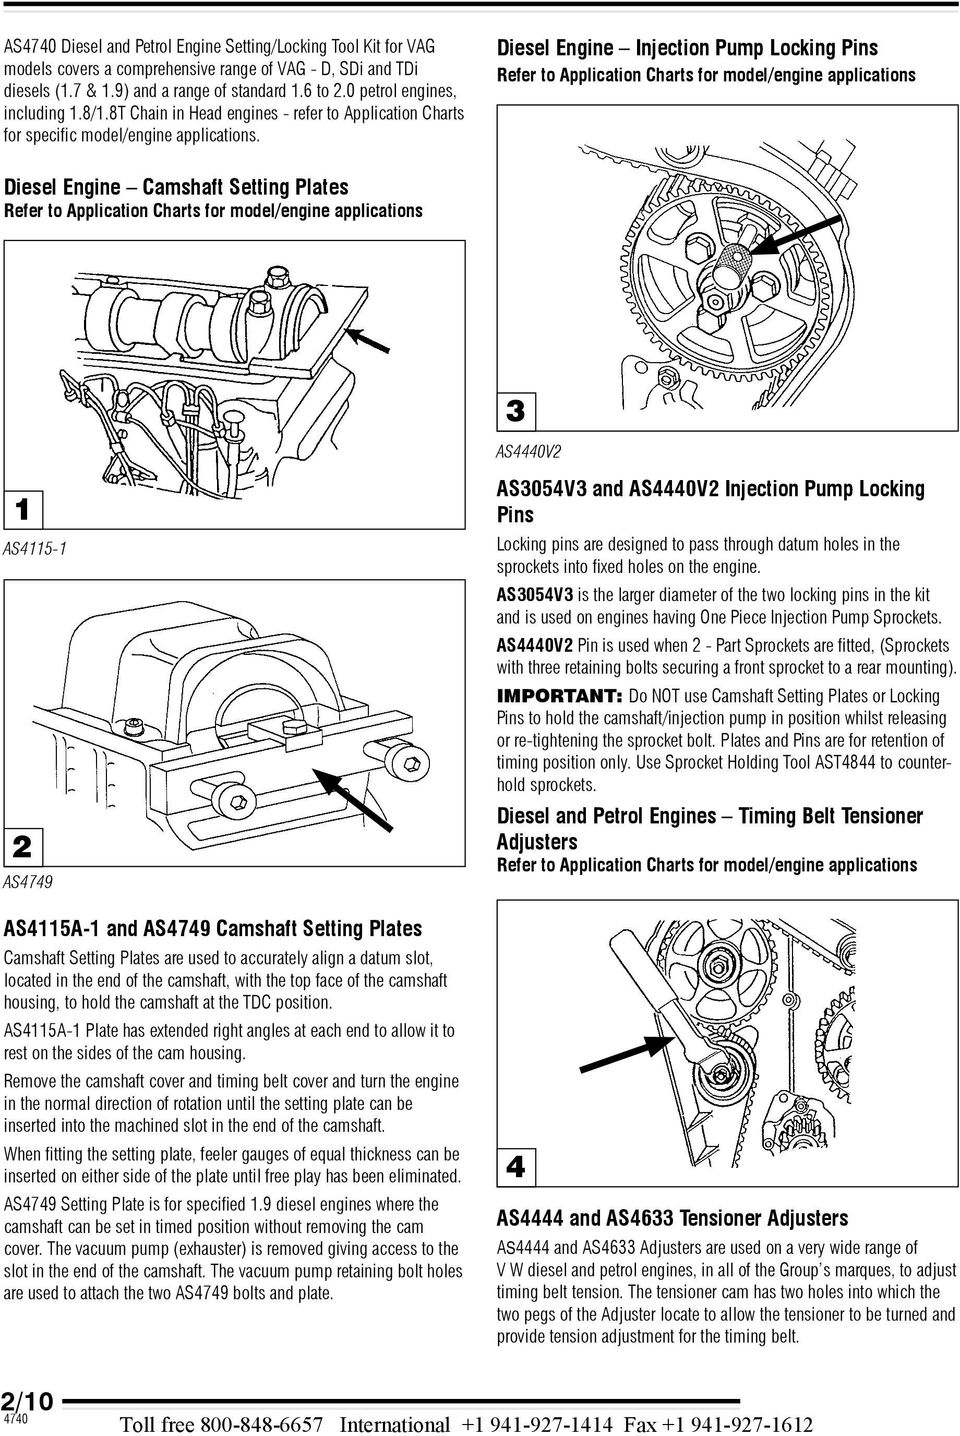 As4740 Diesel Petrol Engine Setting Locking Tool Kit Associated Volkswagen Diagram Diese Injection Pump Pins Refer To Appication Charts For Mode Appications